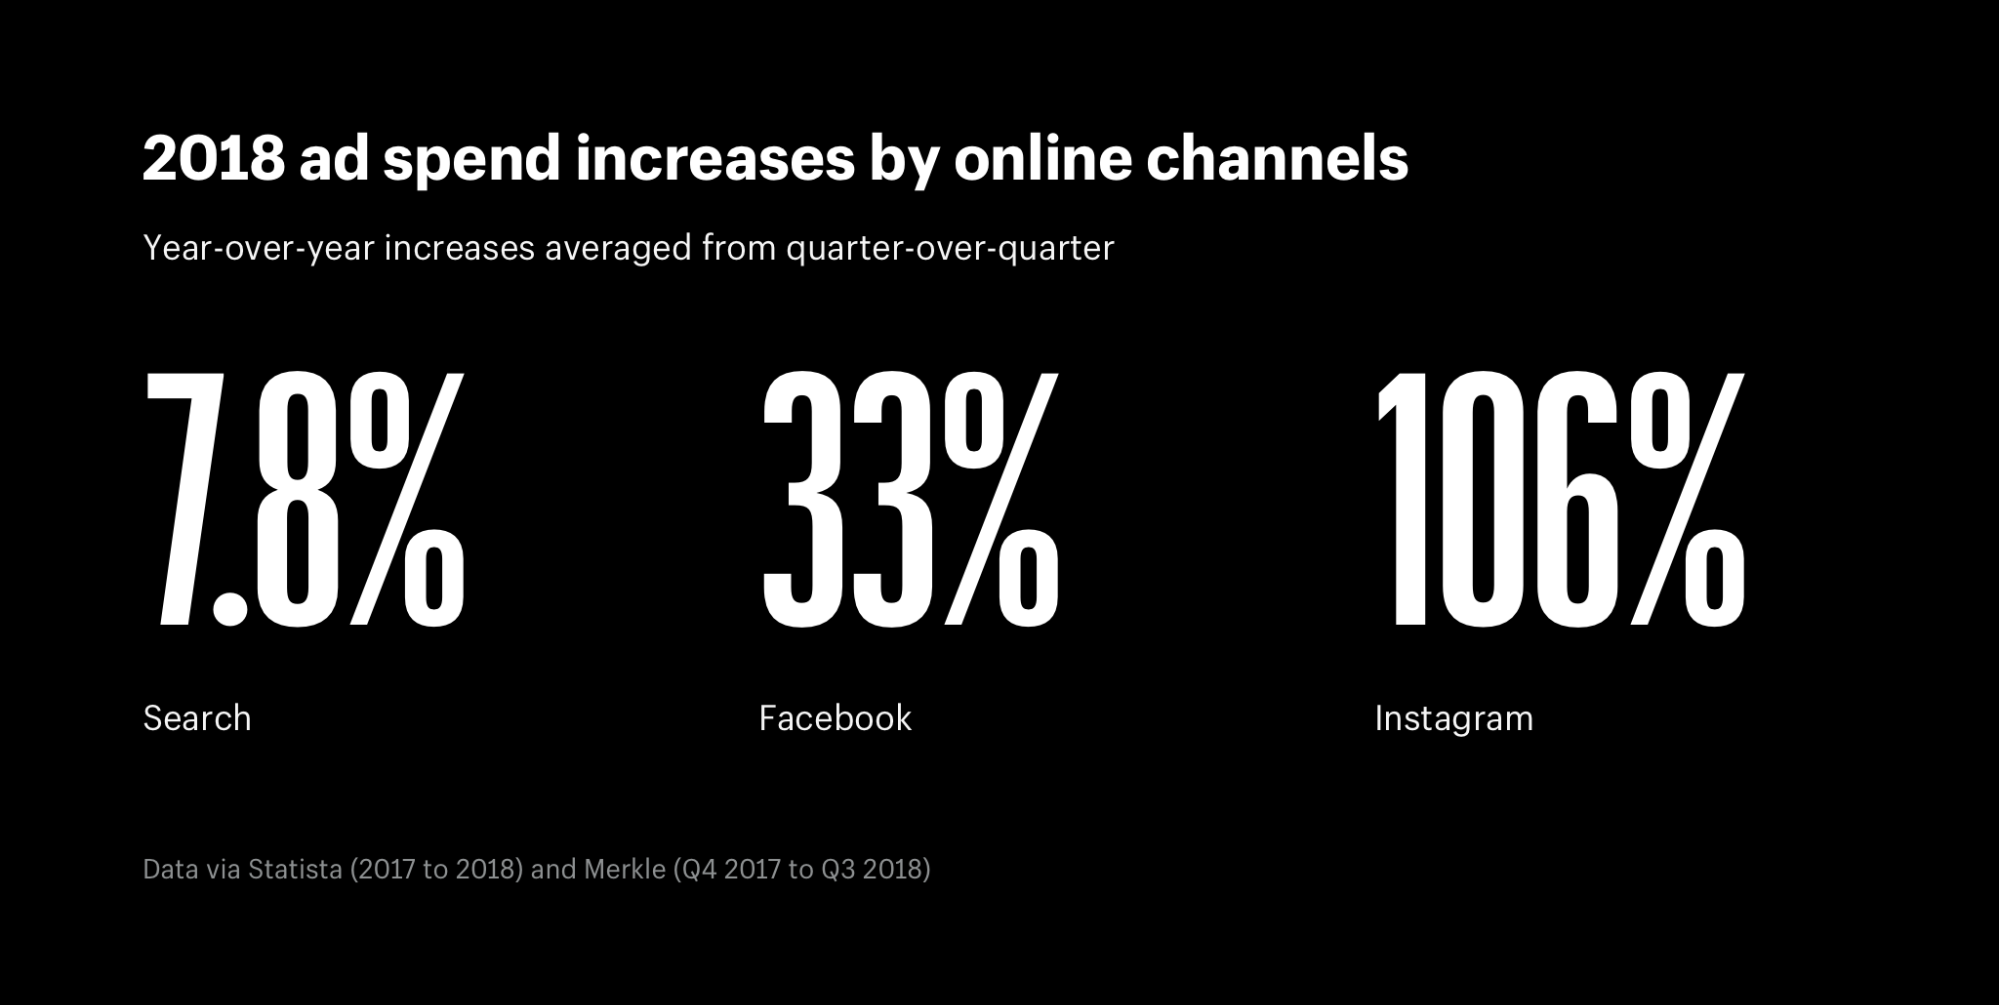 2018 ad spend increases by online acquisition channels